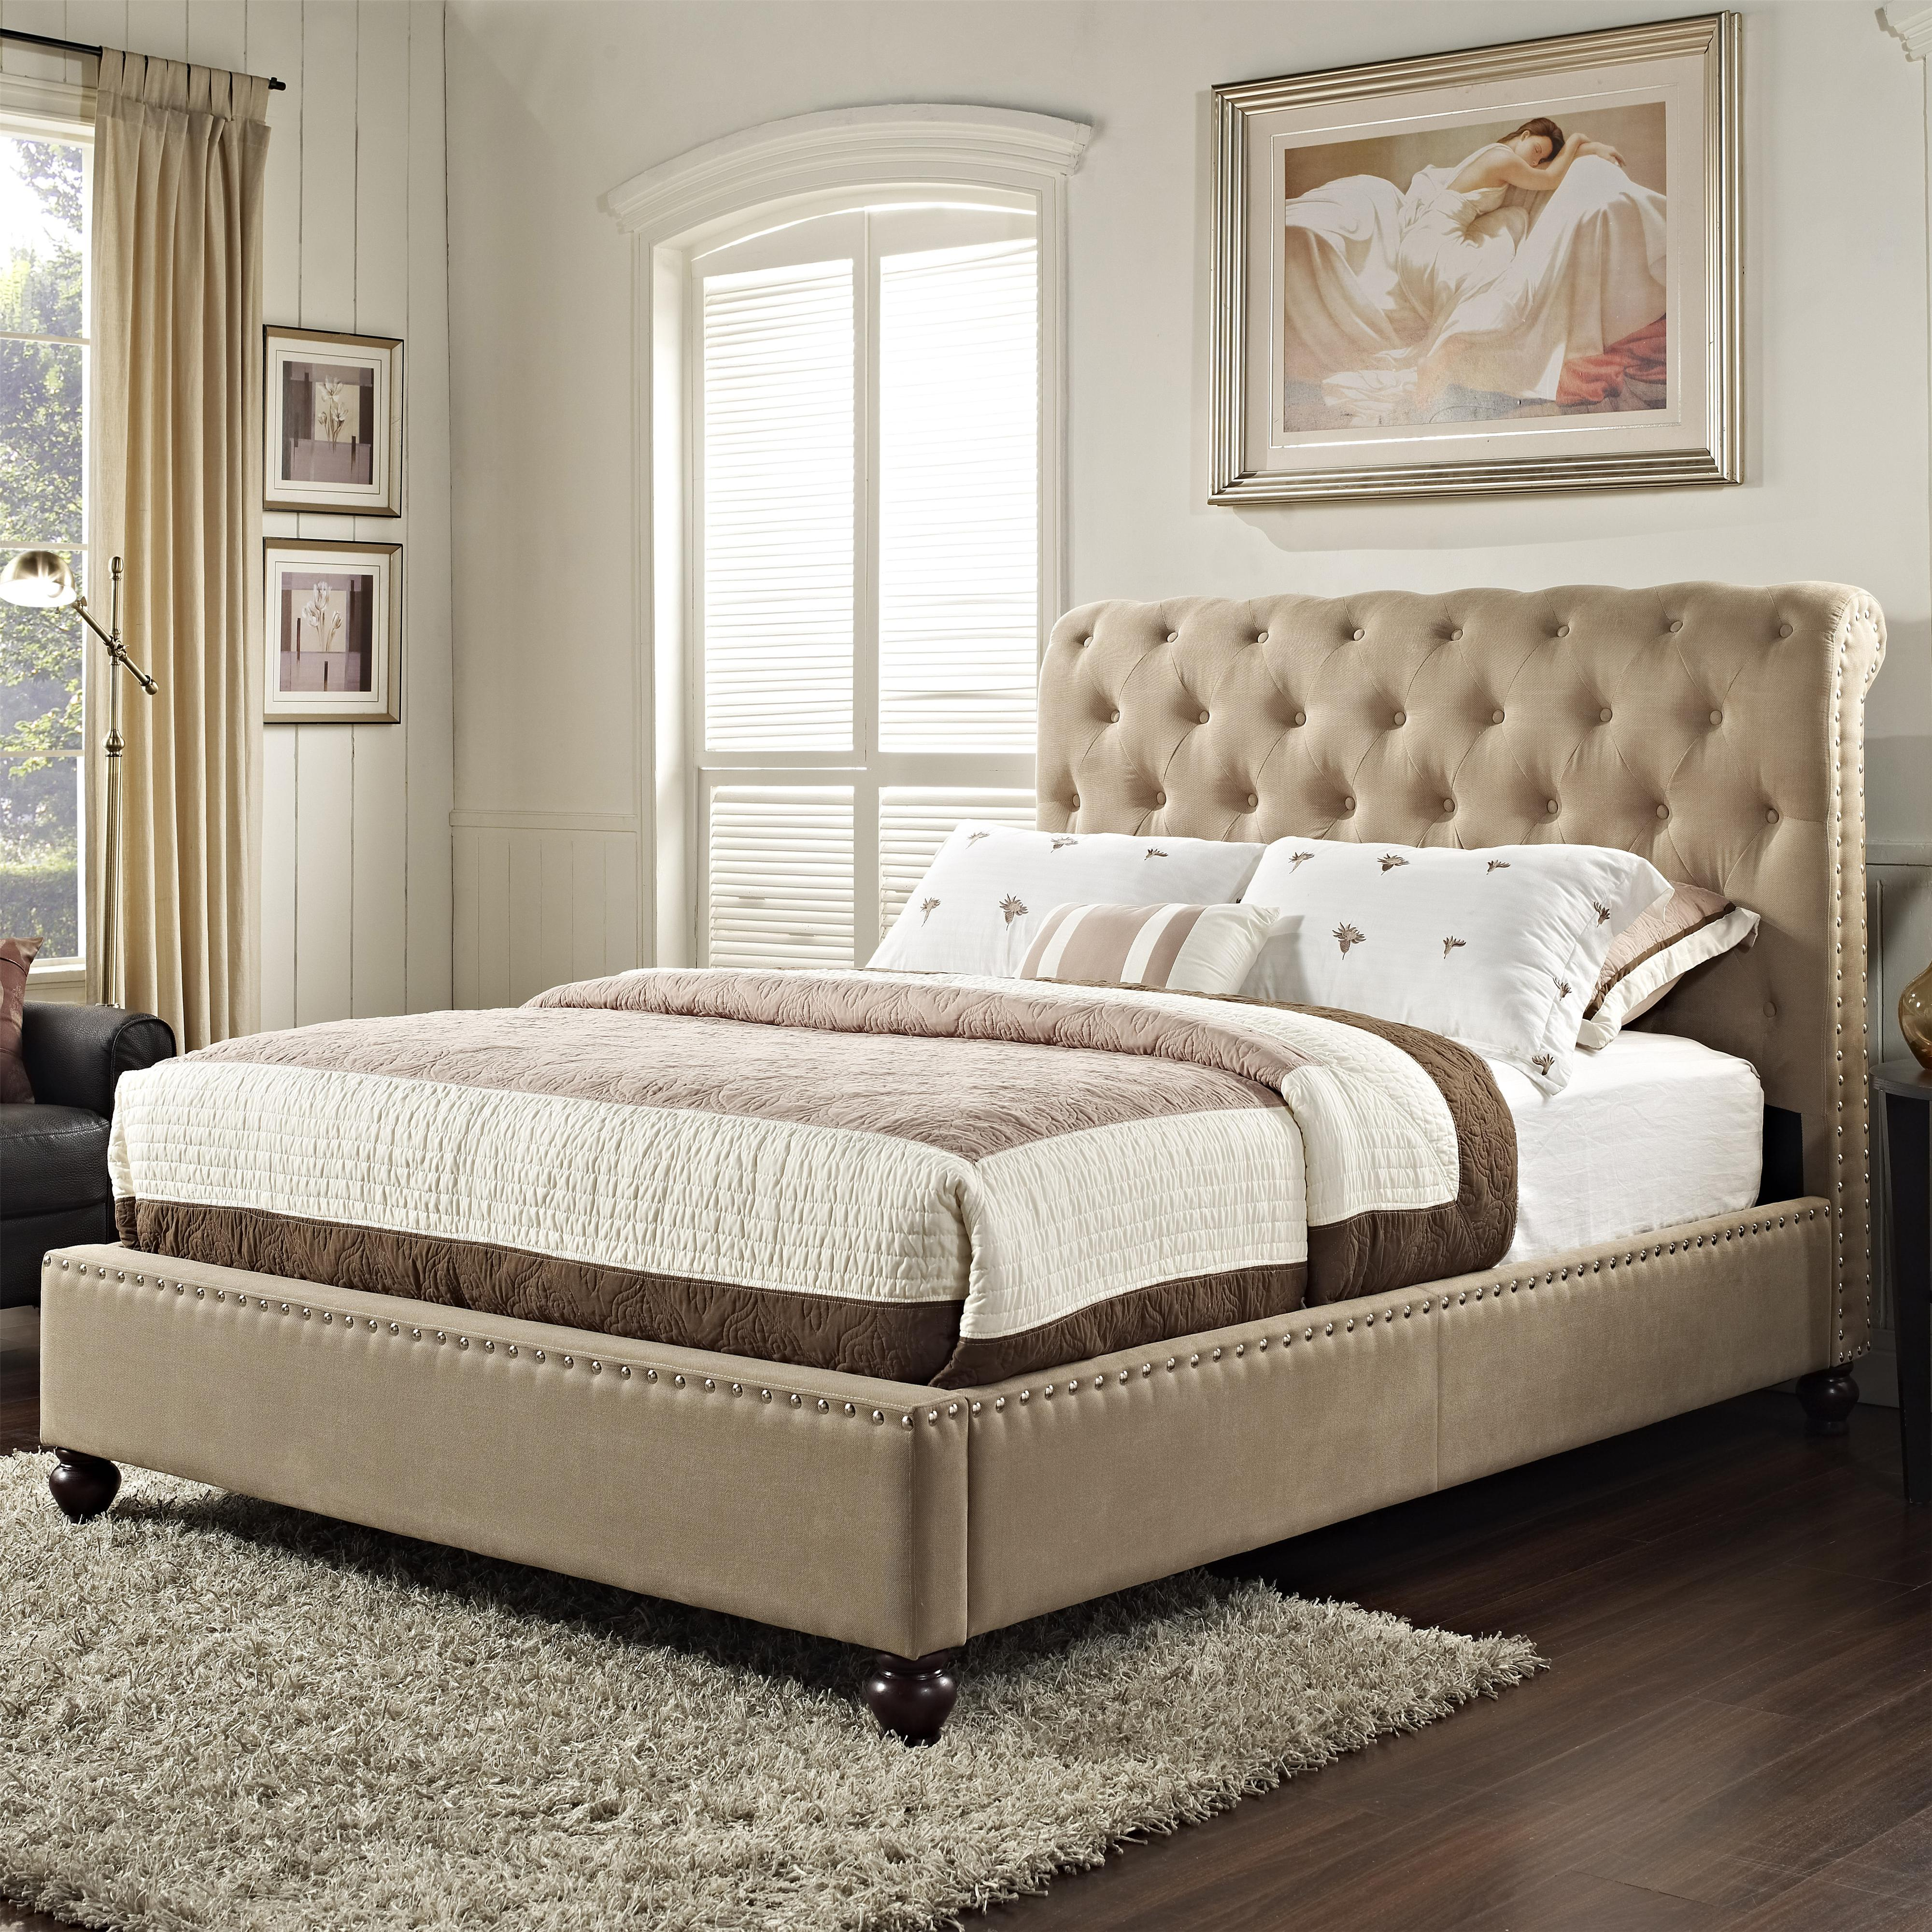 Standard Furniture Stanton Upholstered Queen Bed With